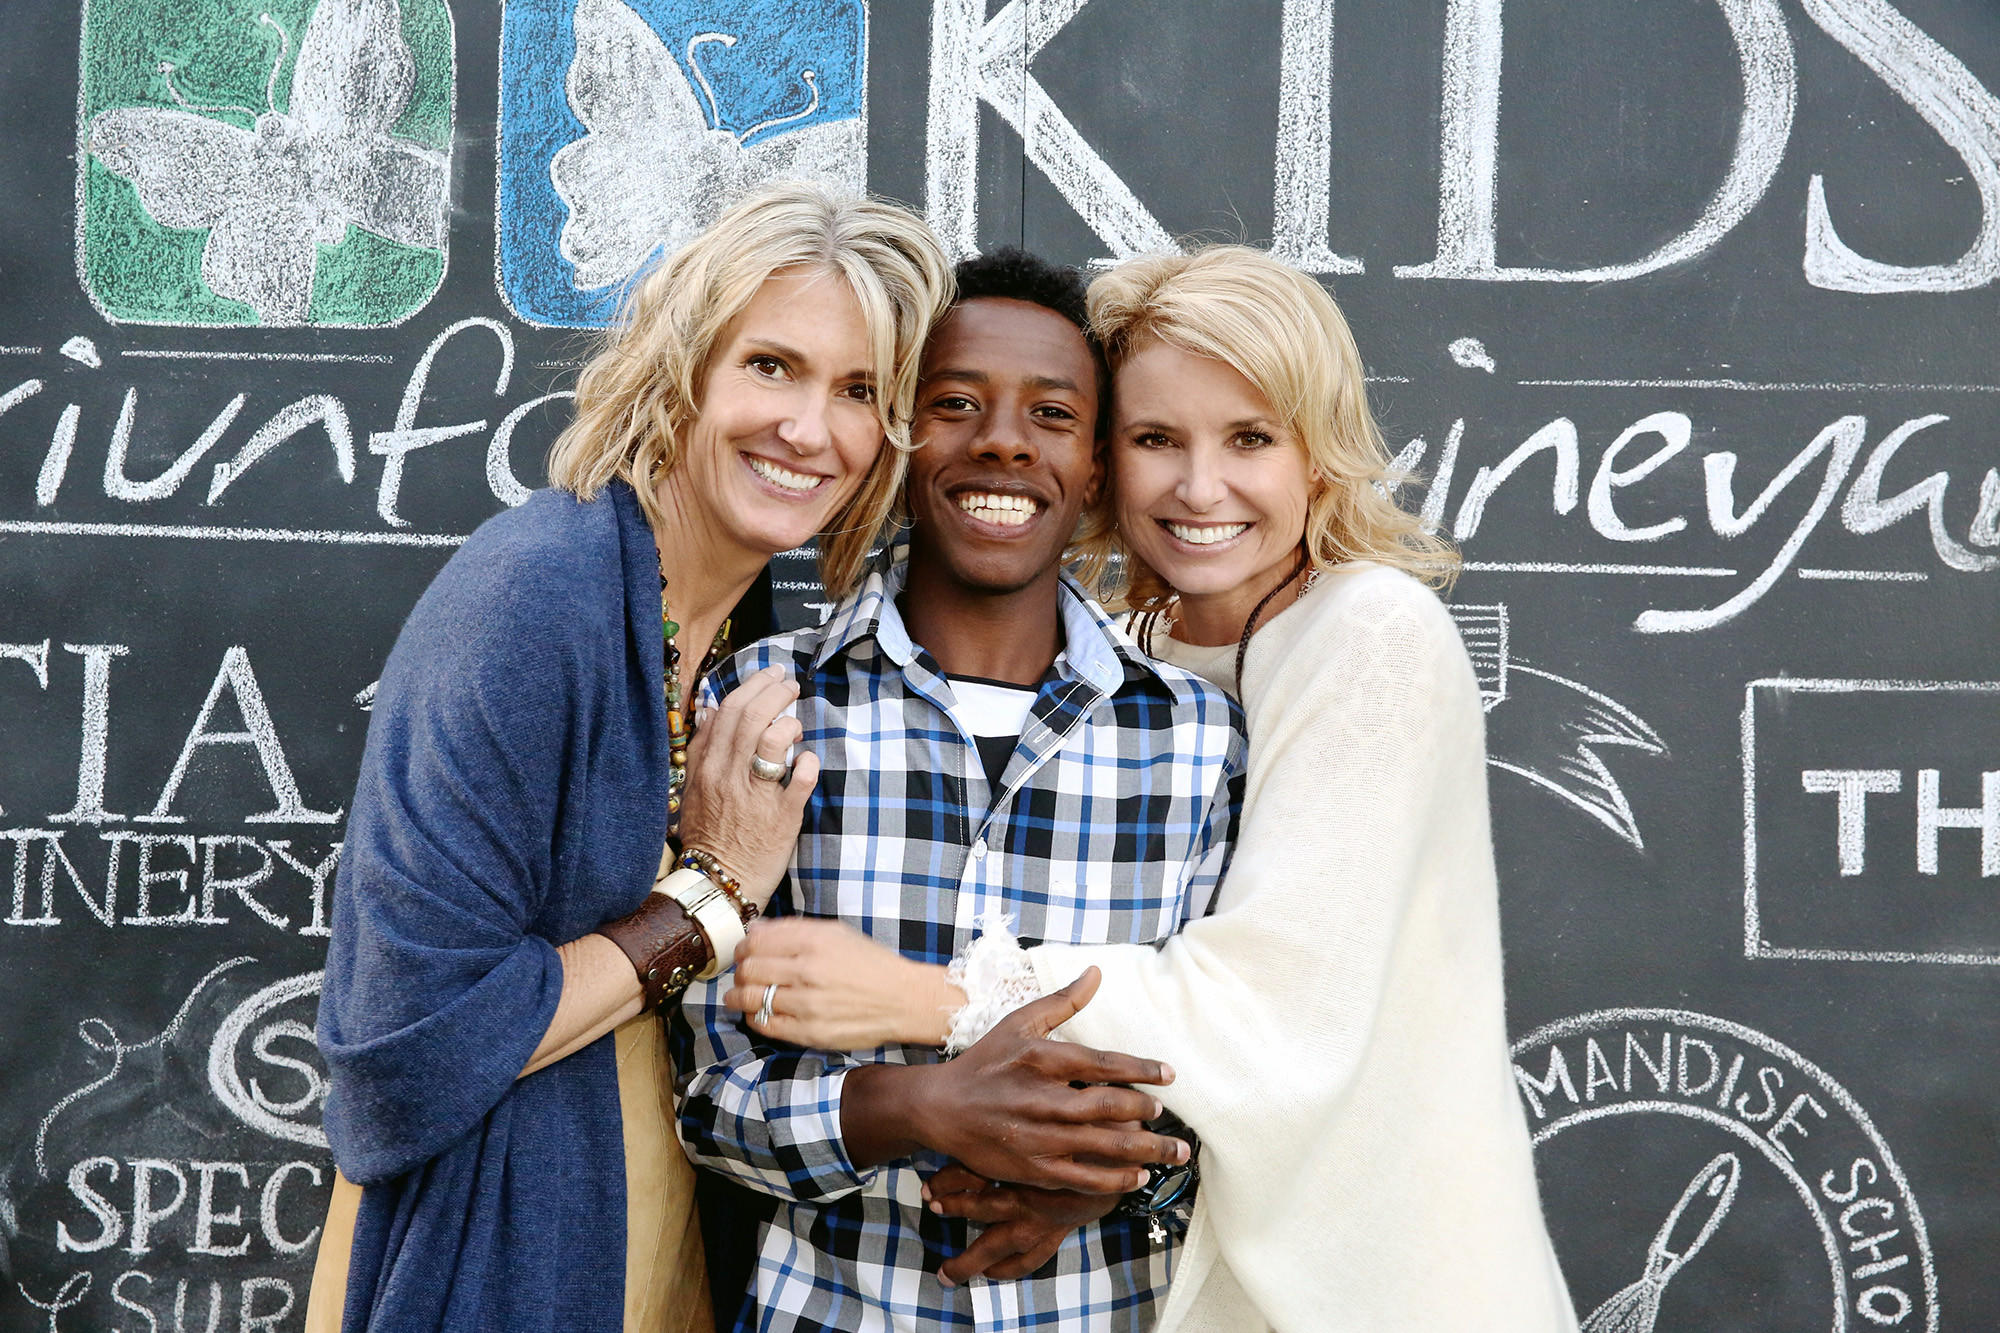 Left, Laurie Dugan, president of the Mending Kids board of directors, and her event co-chair Brooke Bohm with a young man from Ethiopia named Werkneh who has received treatment from Burbank-based organization Mending Kids for painful, 10-pound tumors on his hands.